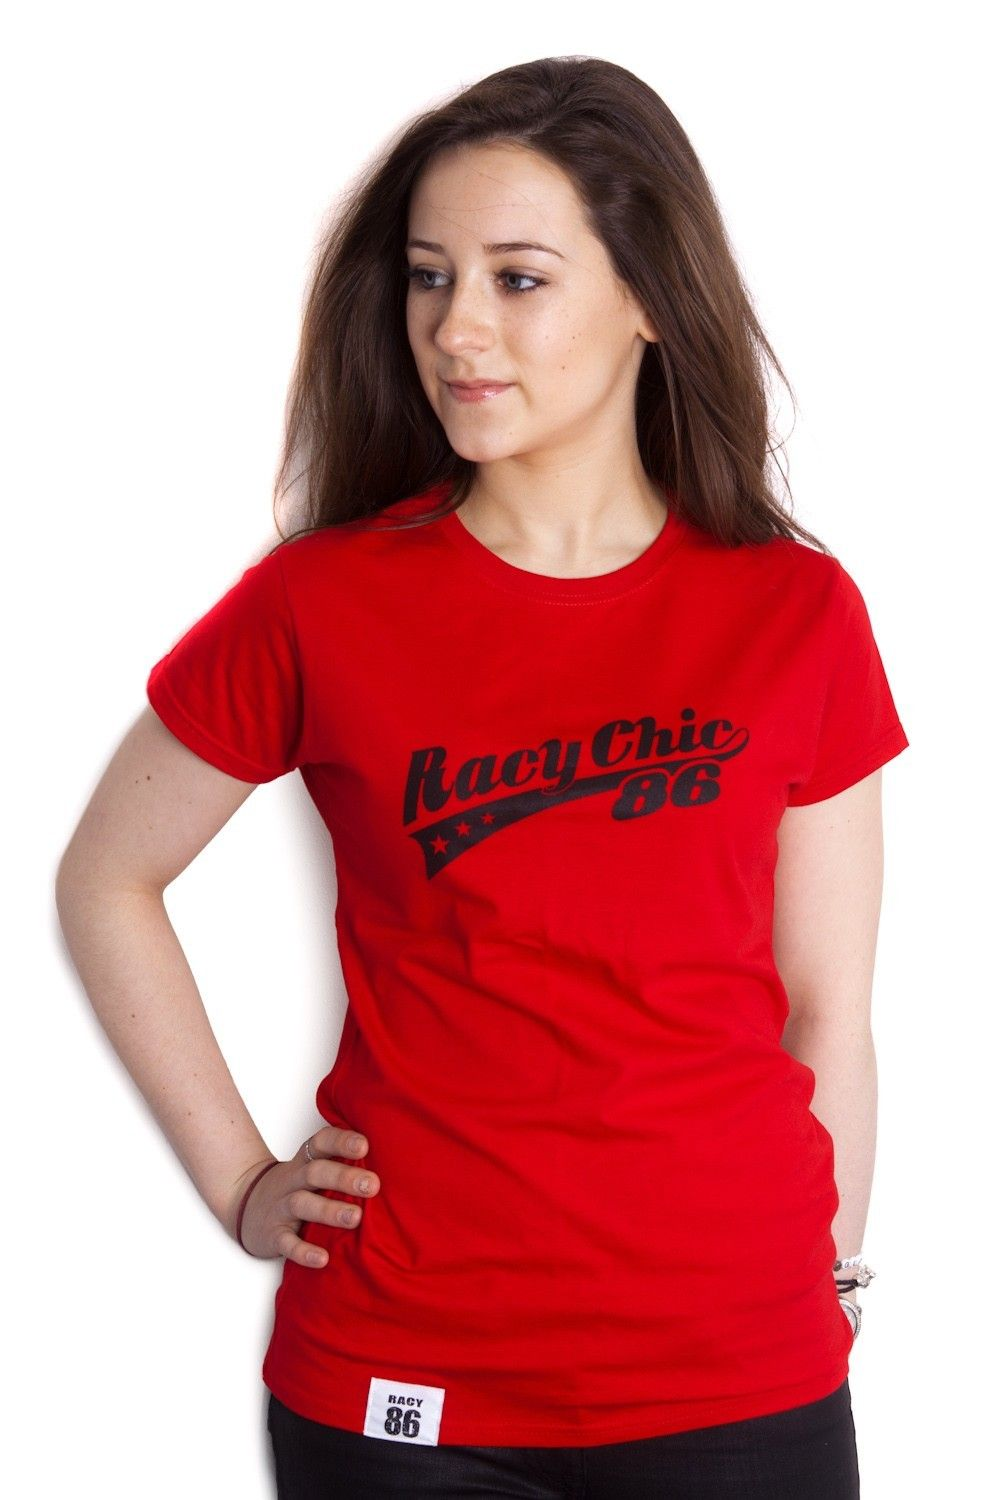 Racy Chic logo tshirt cherry red. Available Racy86 http